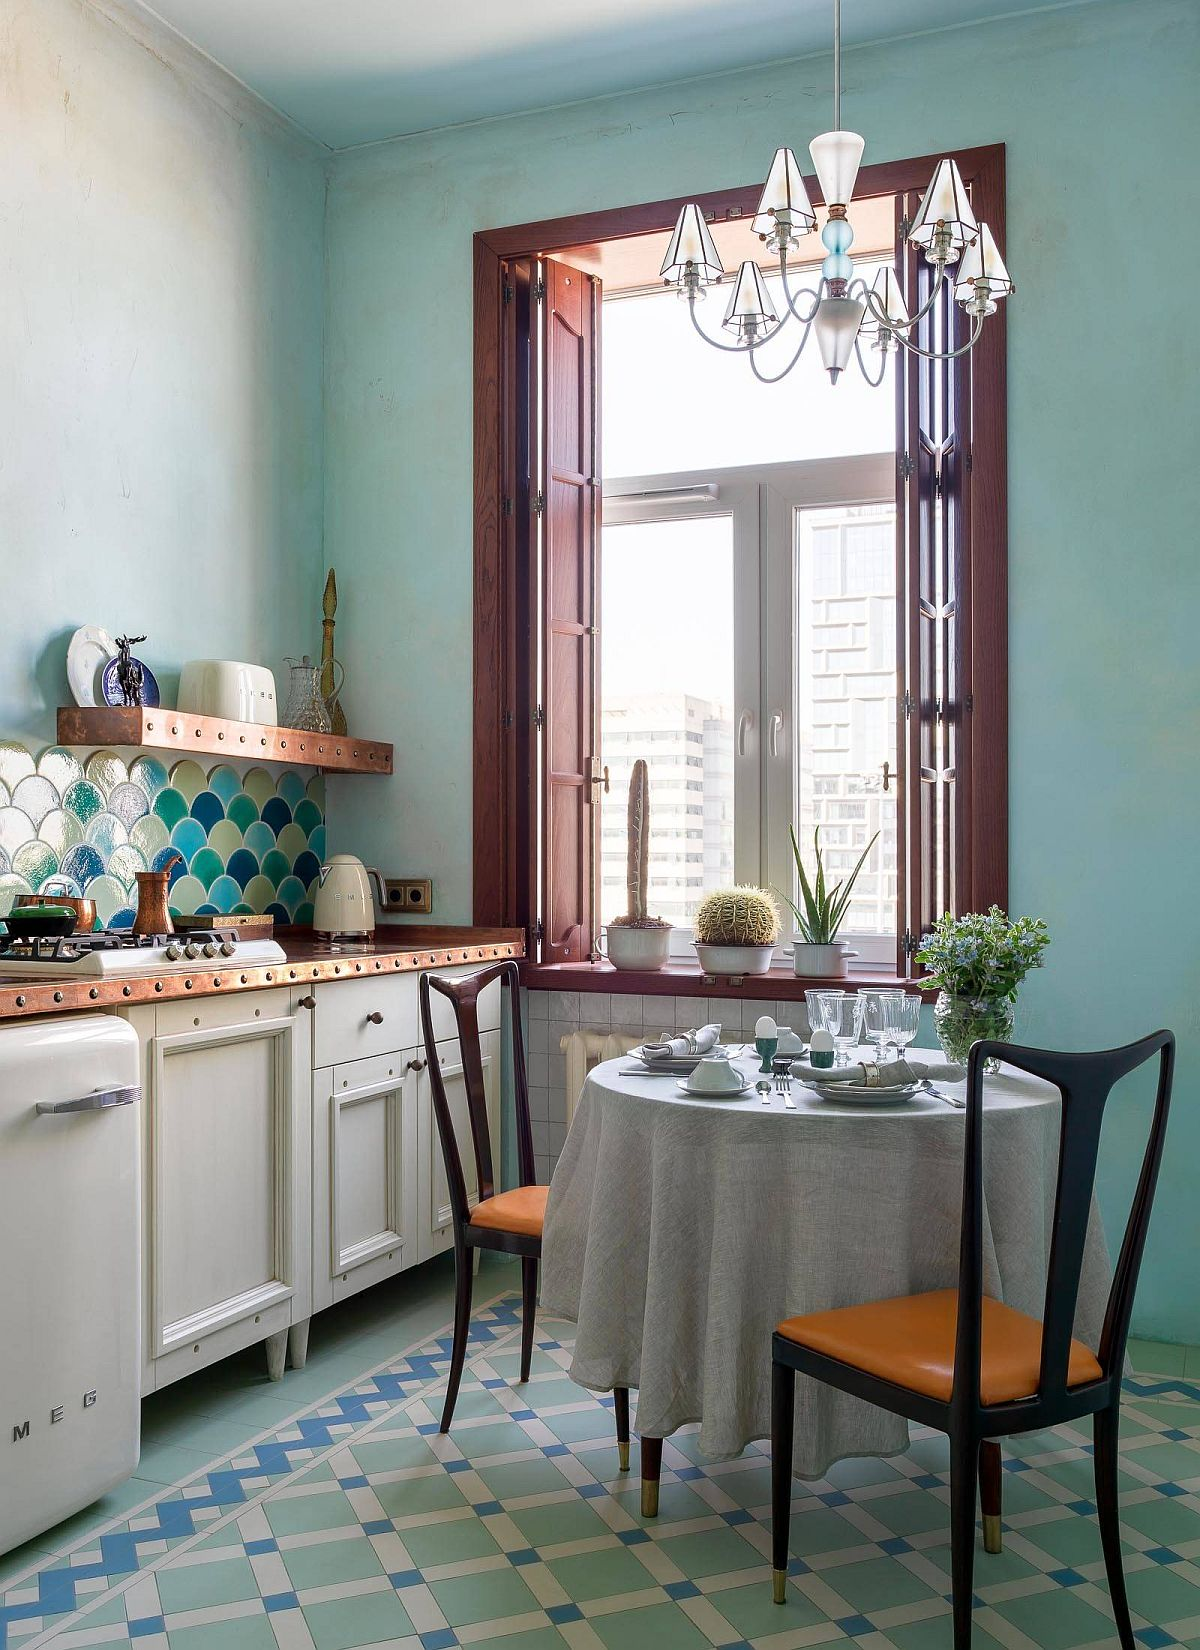 Stylish-eat-in-kitchen-in-blue-with-multi-colored-tiles-and-plenty-of-blue-30816